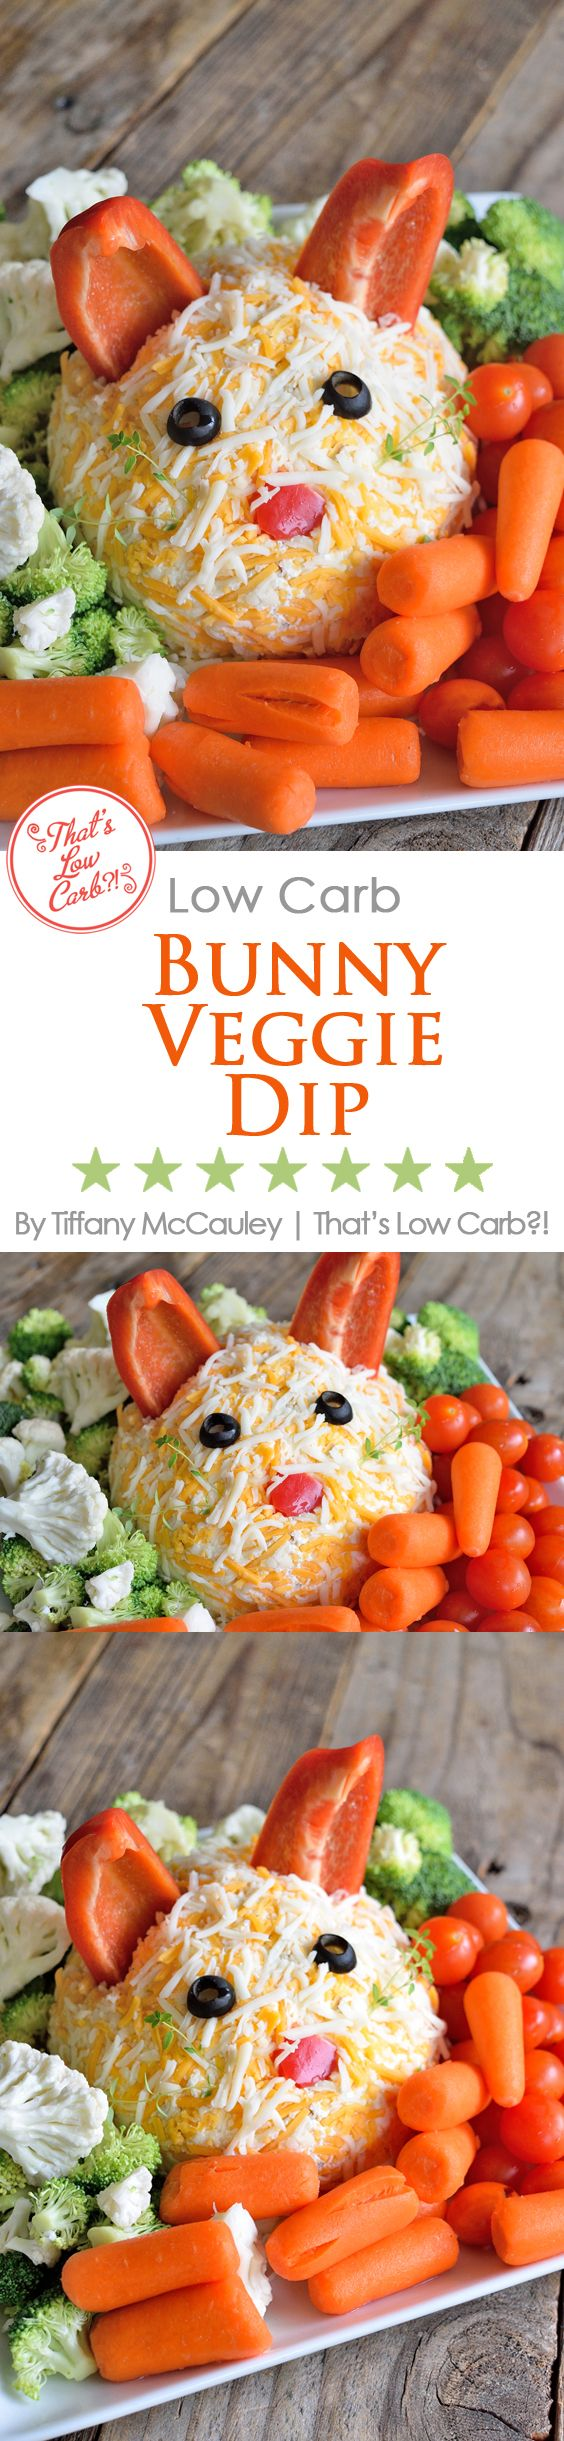 Low Carb Recipes | Veggie Dip Recipes | Easter Recipes | Vegetable Dip ~ https://www.thatslowcarb.com